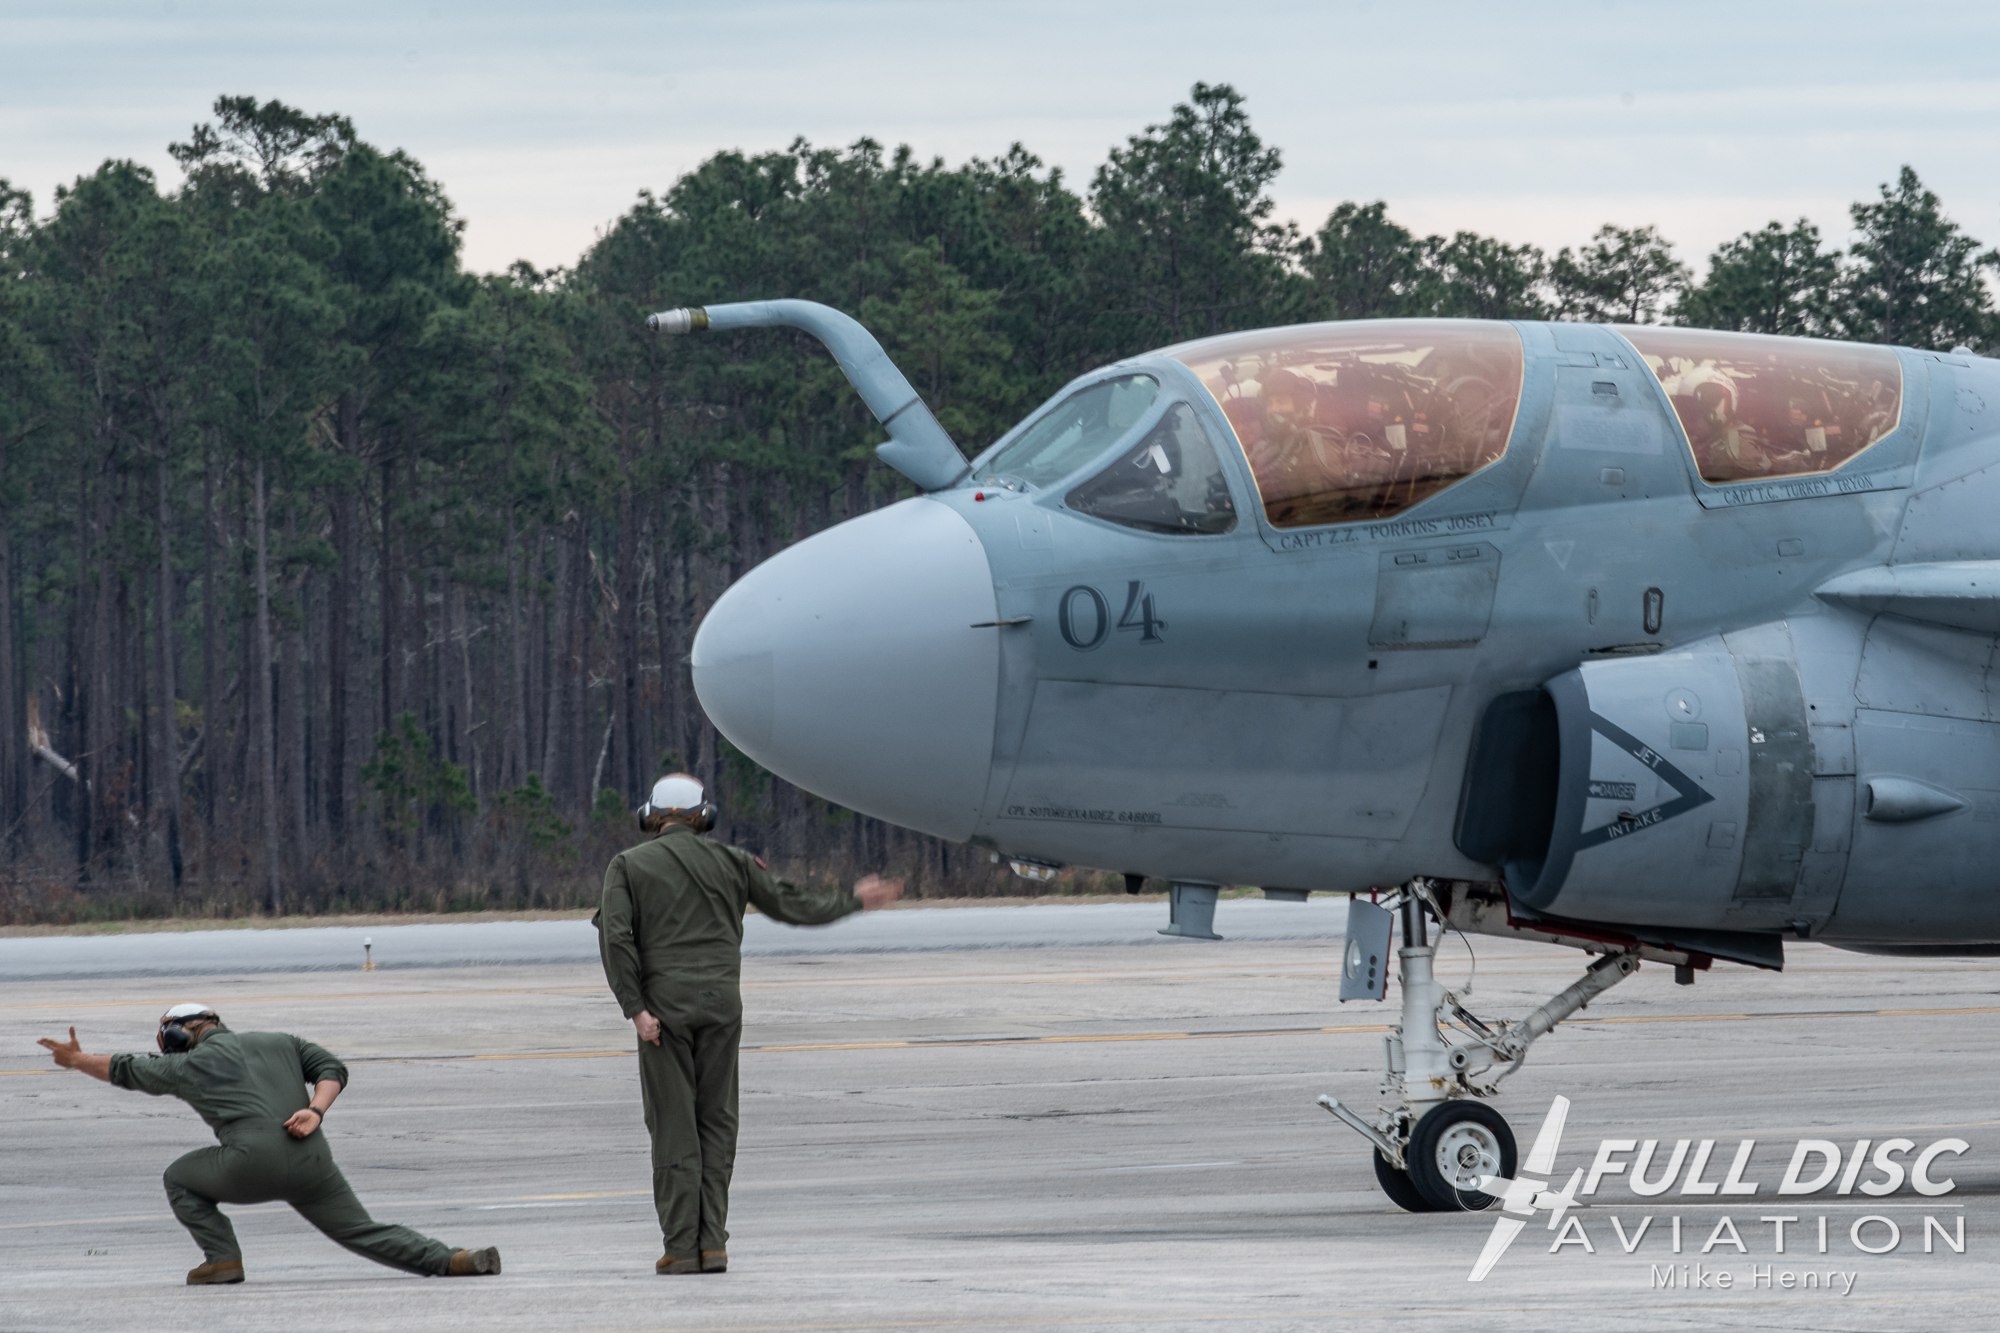 FullDiscAviation_ProwlerSundown_MikeHenry-March 08, 2019-08.jpg